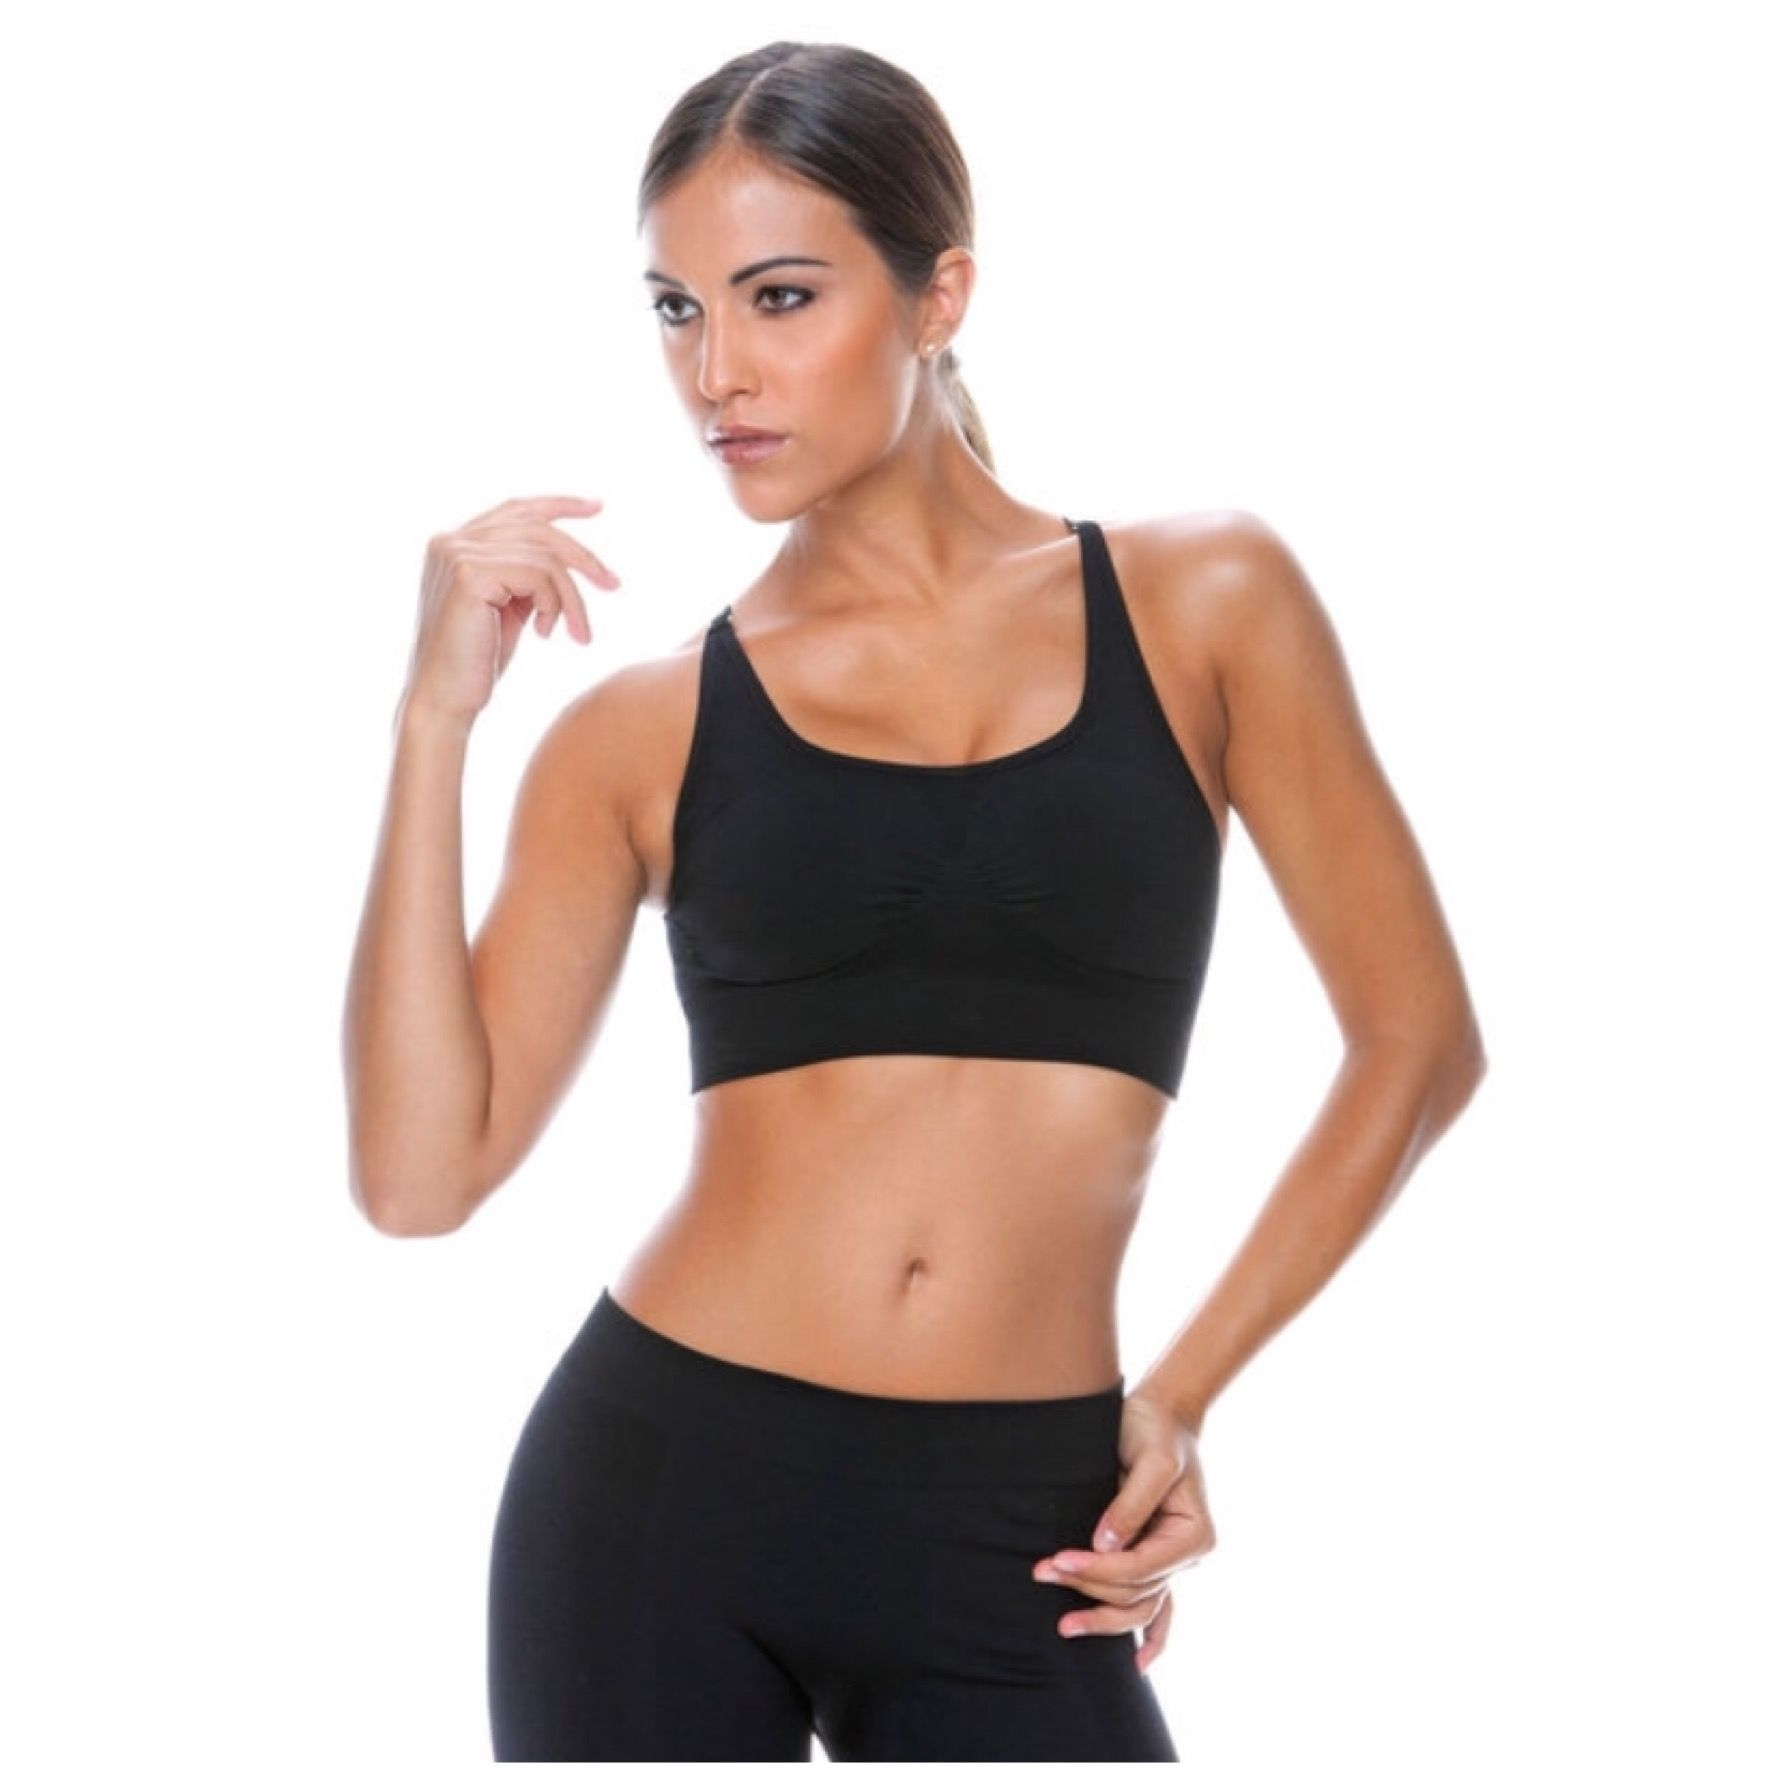 Best 11 Wireless black ControlBody sports bra, made from specially designed high-tech fabric to provide support & shape.